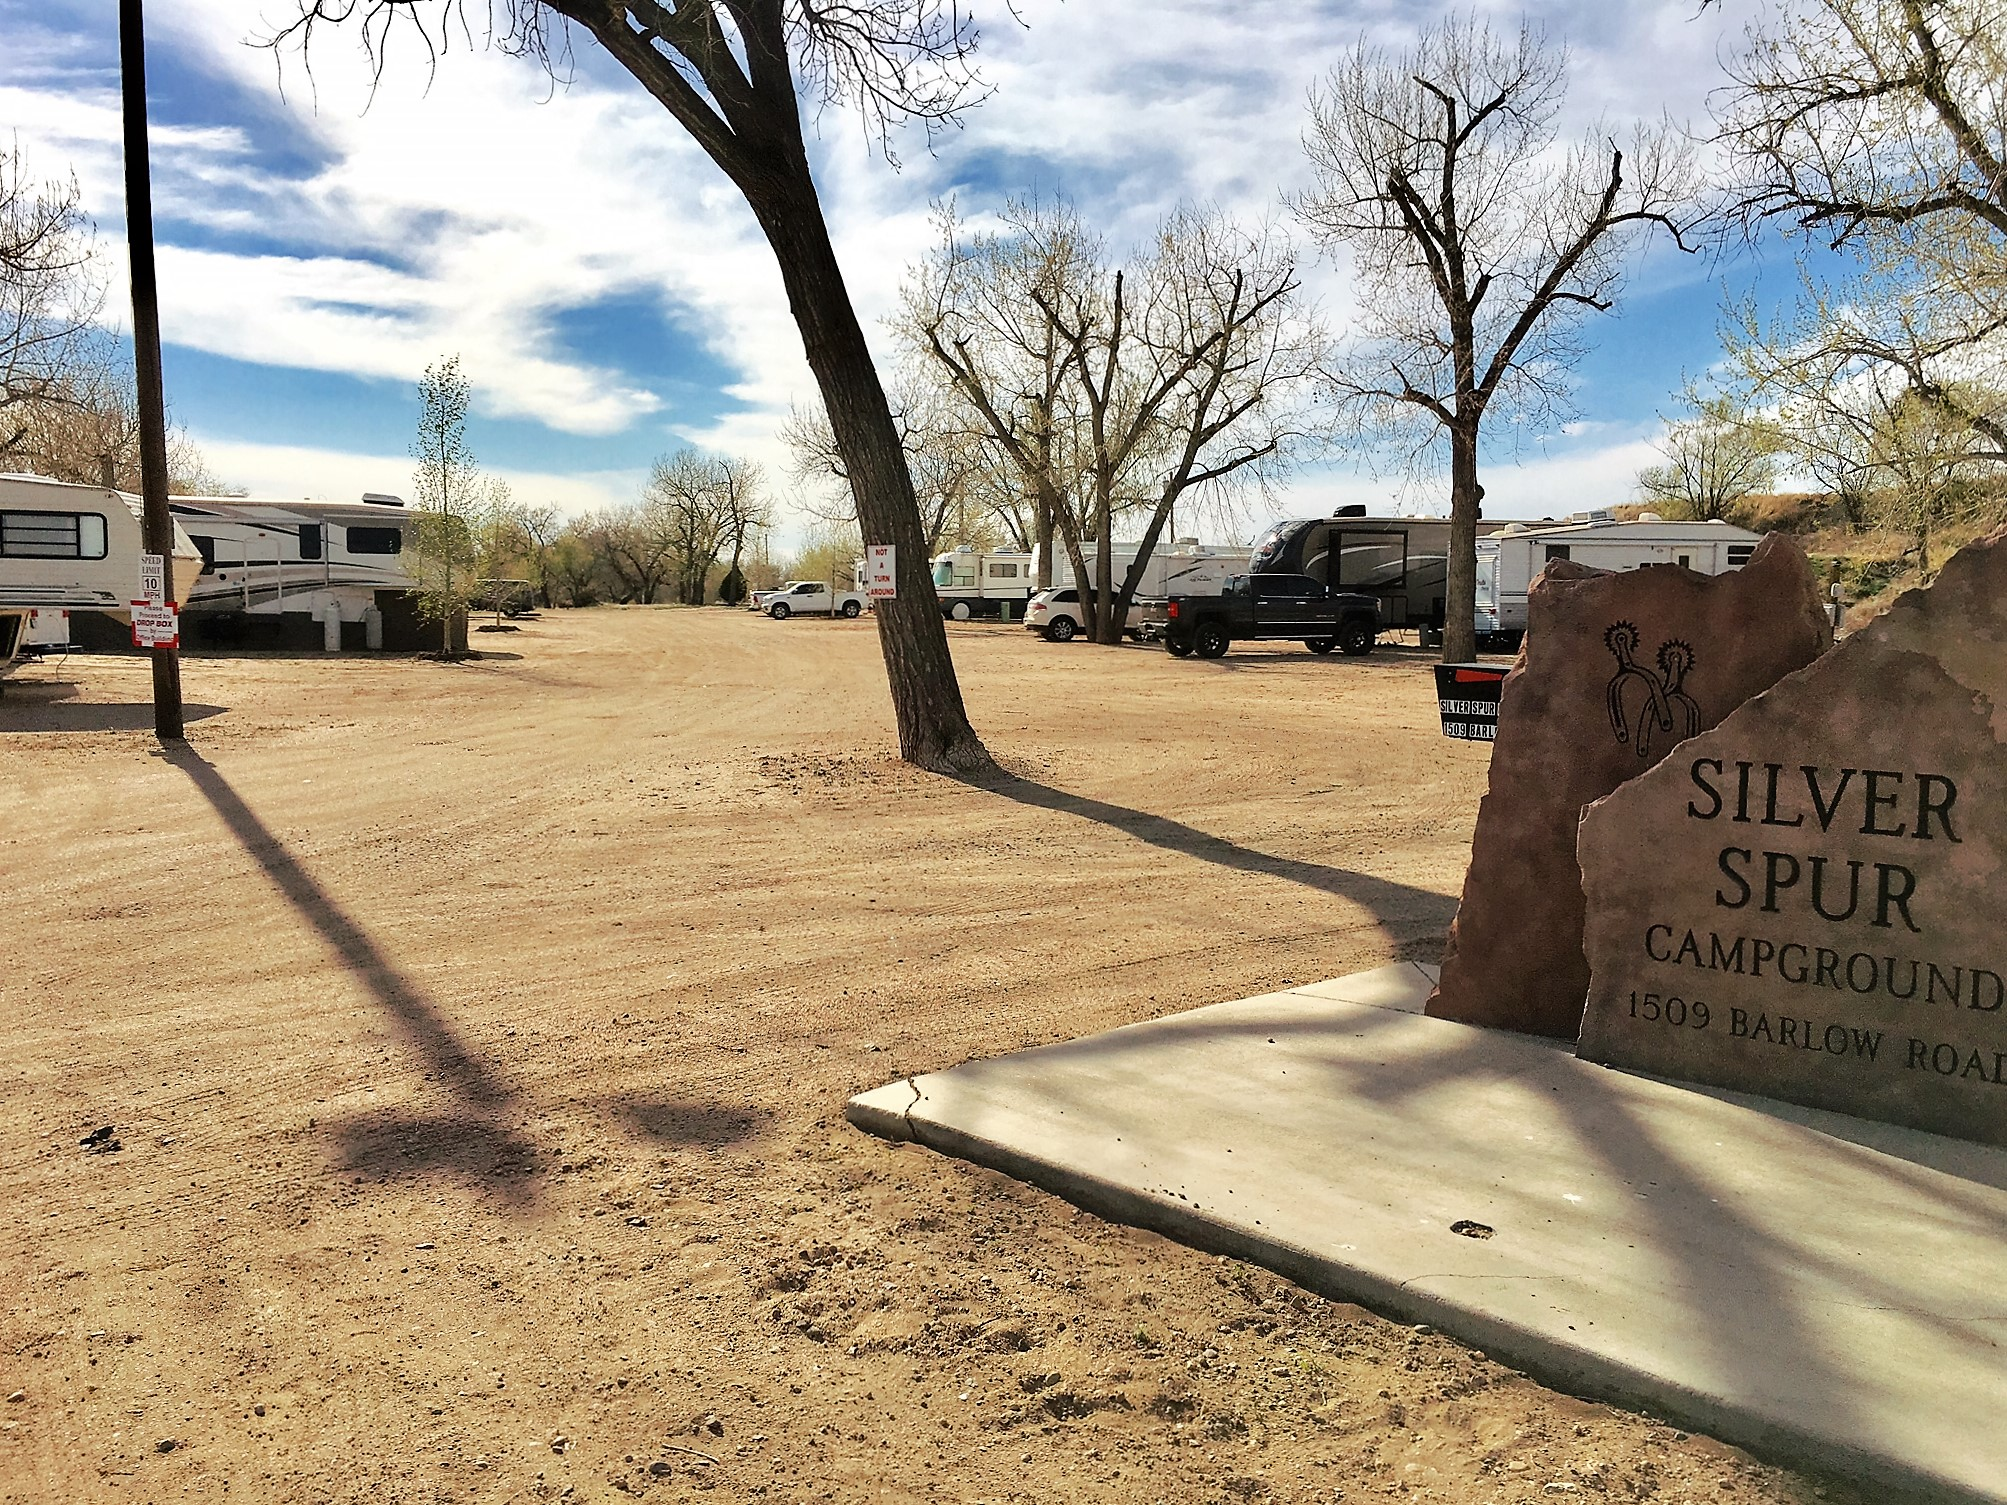 Silver Spur Campground image 0